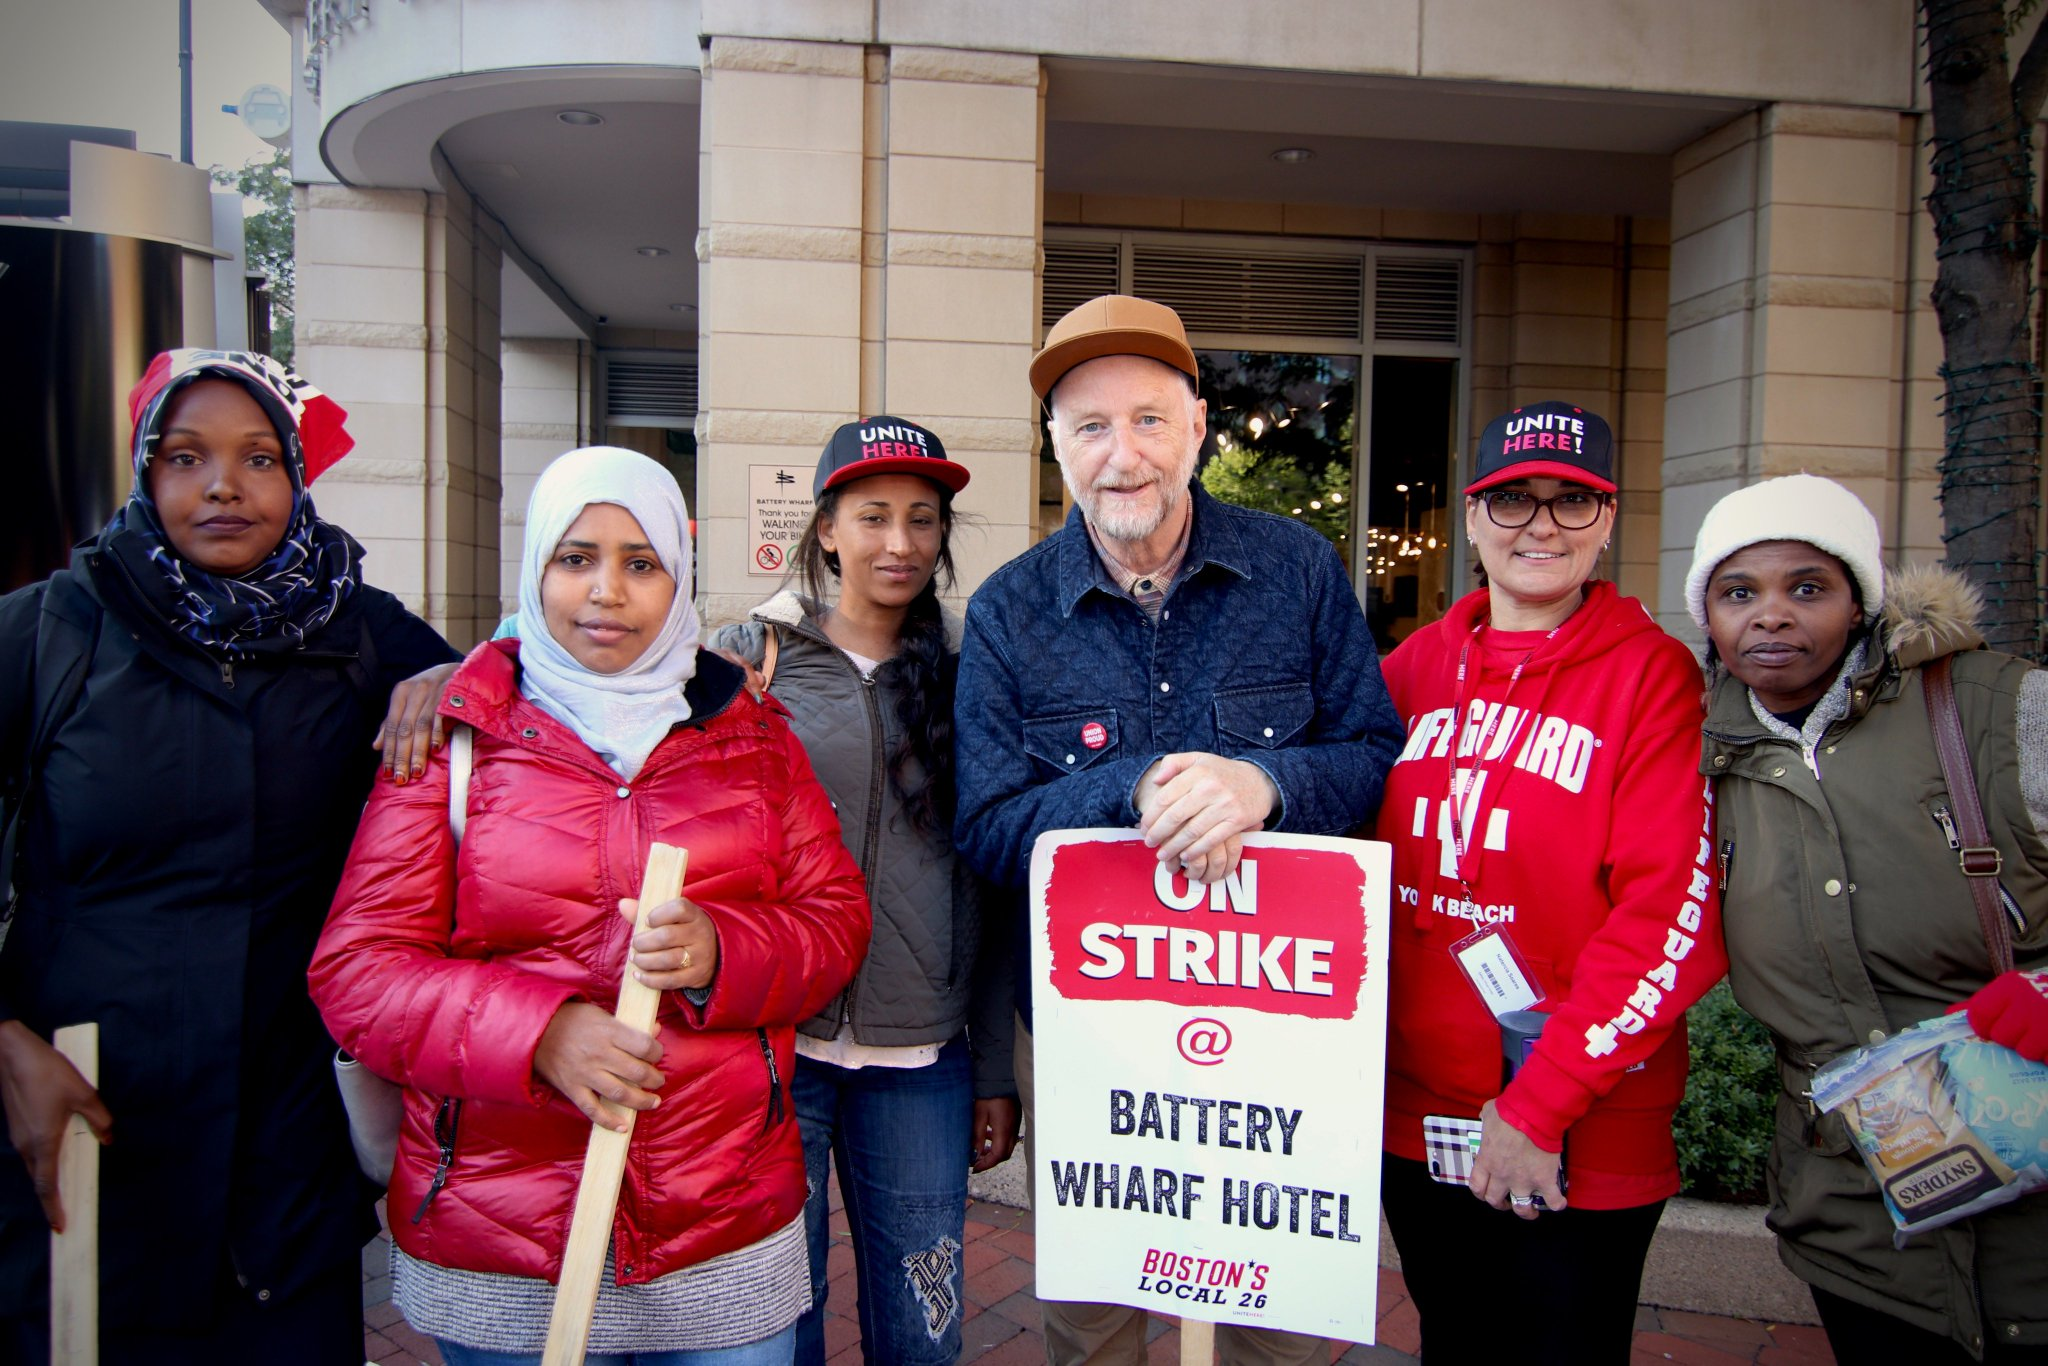 Thank you to @billybragg for supporting striking Battery Wharf Hotel workers. These badass housekeepers have been on strike for a month fighting for affordable health care, fair wages, and sexual harassment protections. And when we fight, we win! #1u #BoycottBatteryWharf https://t.co/POYZAYqbvf